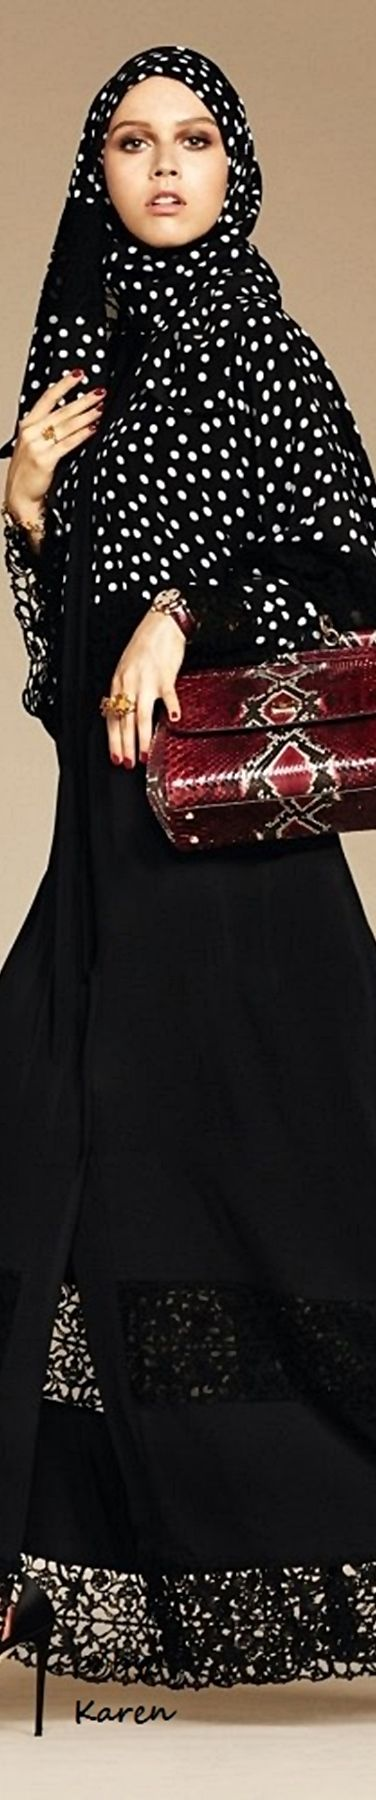 Dolce & Gabbana's Embellished Hijabs and Abayas Are Great News for Muslim…